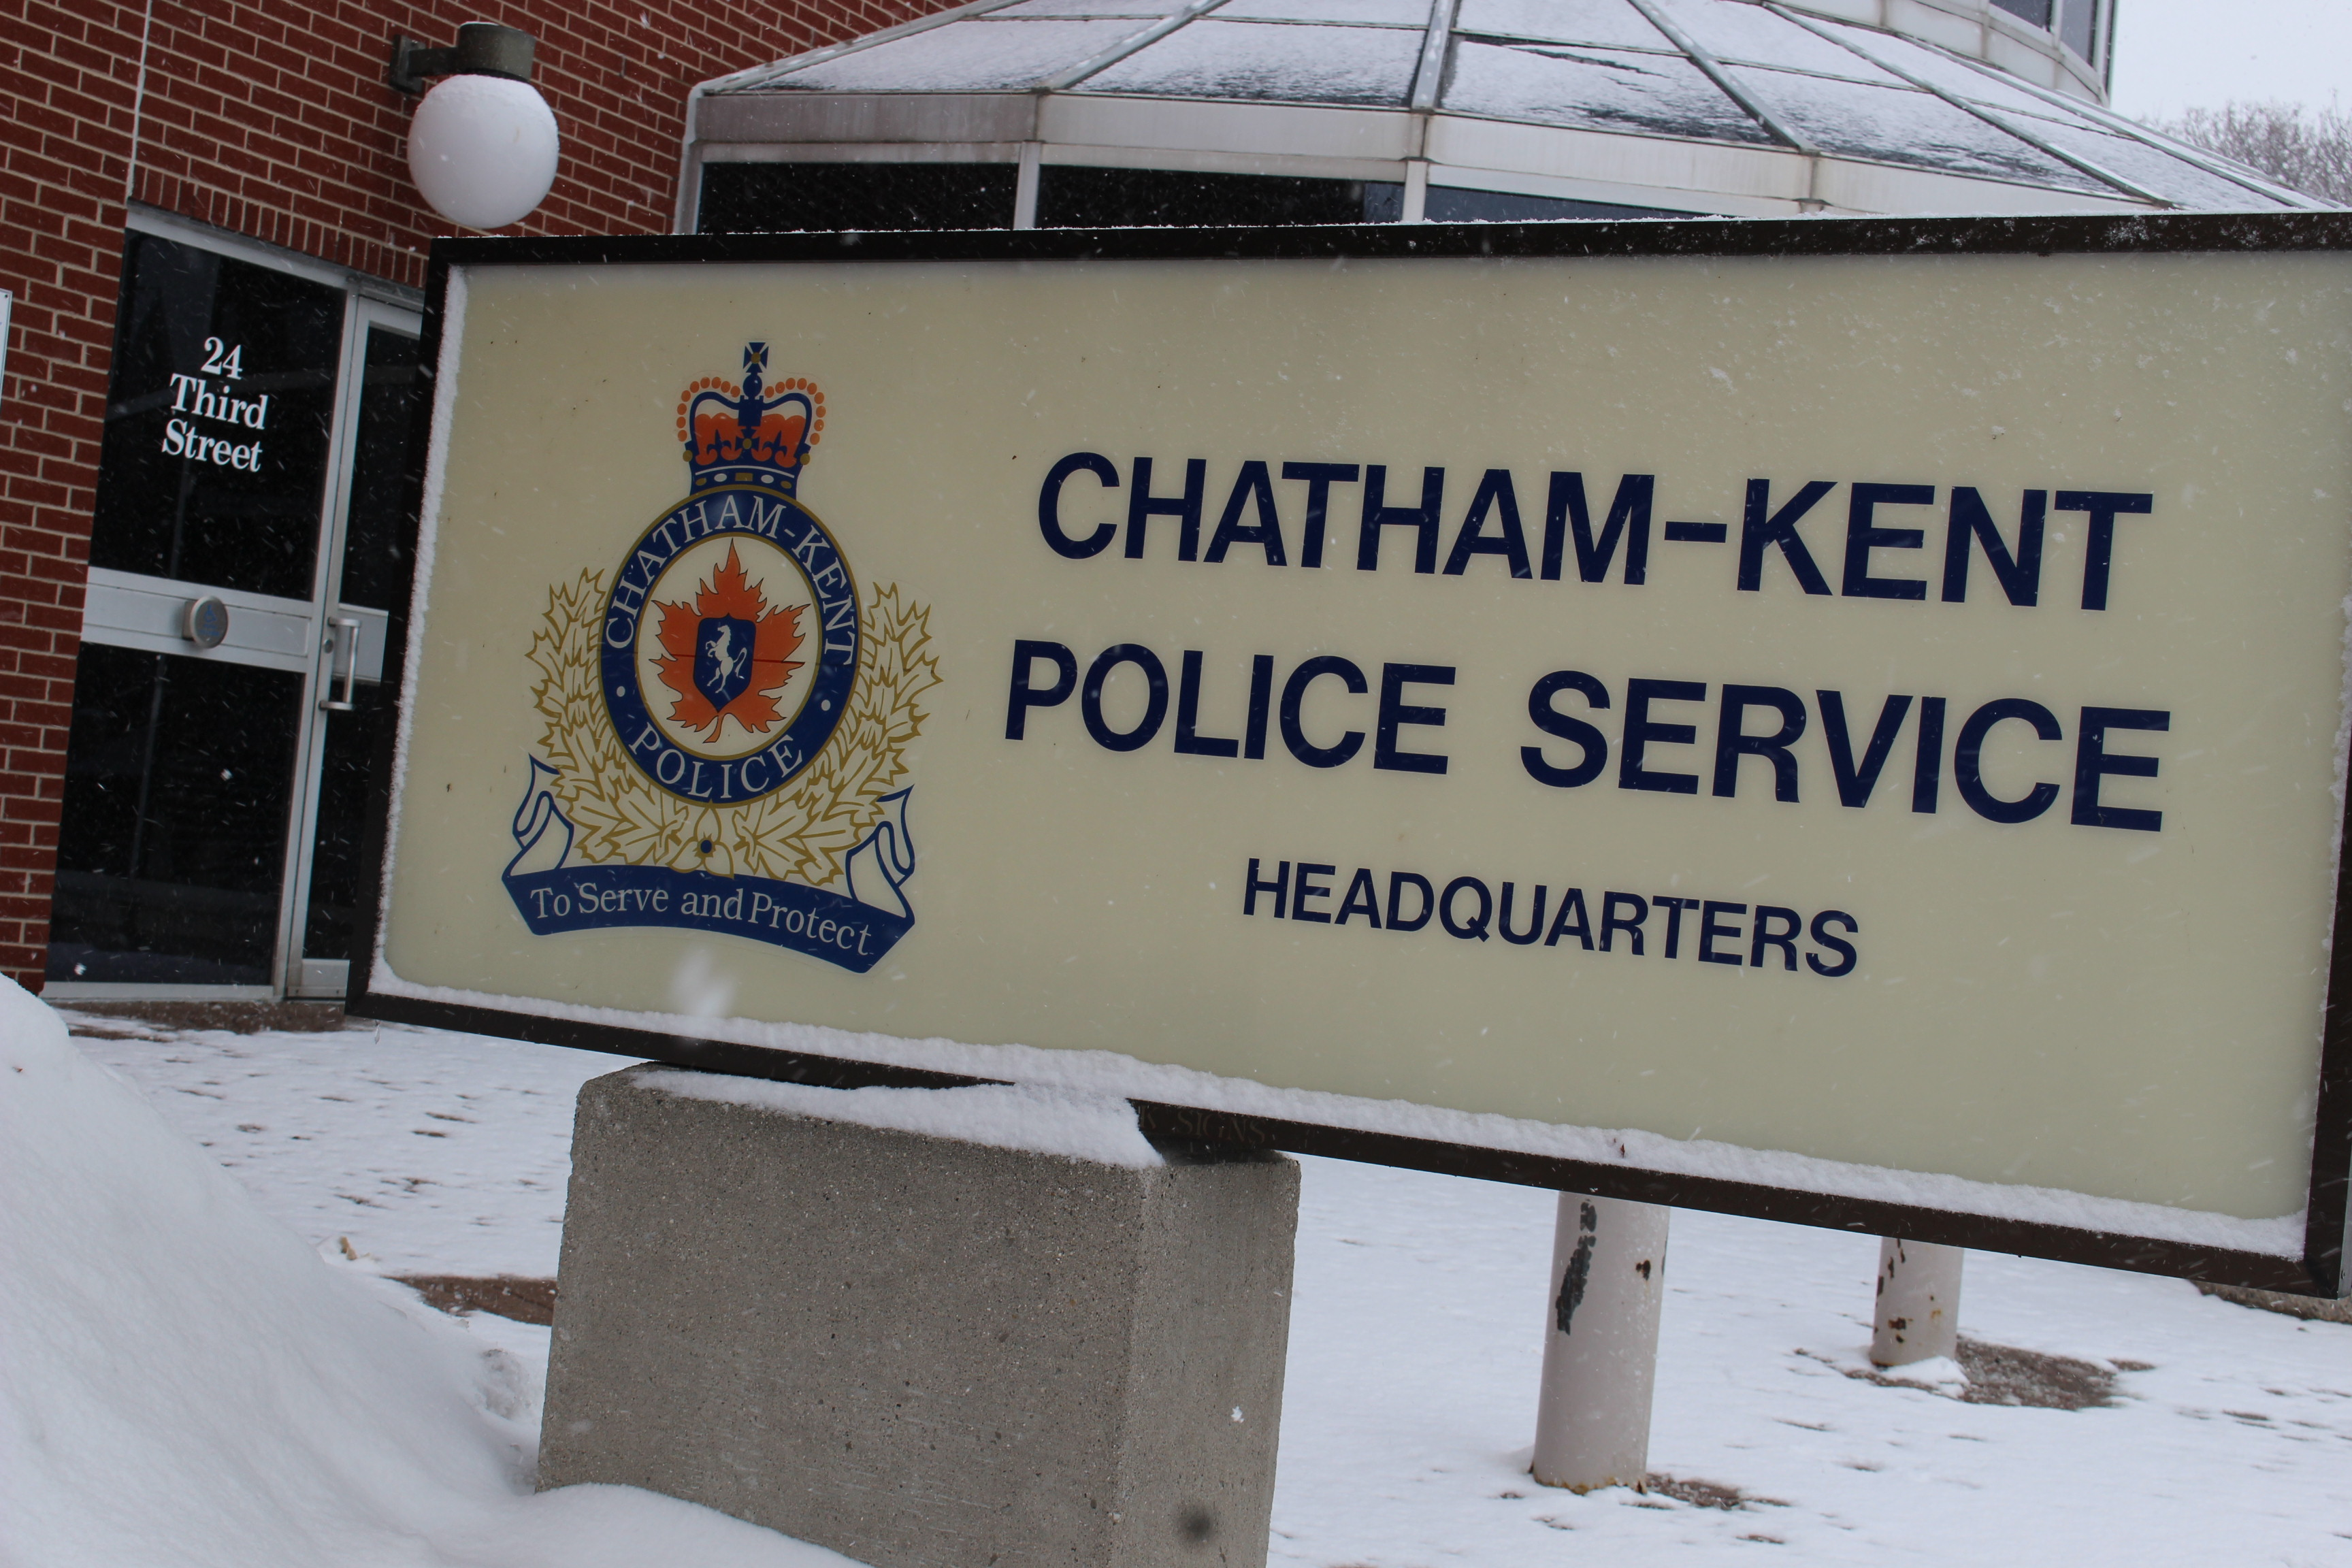 BlackburnNews.com file photo of the Chatham-Kent Police Service Headquarters. (Photo by Jason Viau)